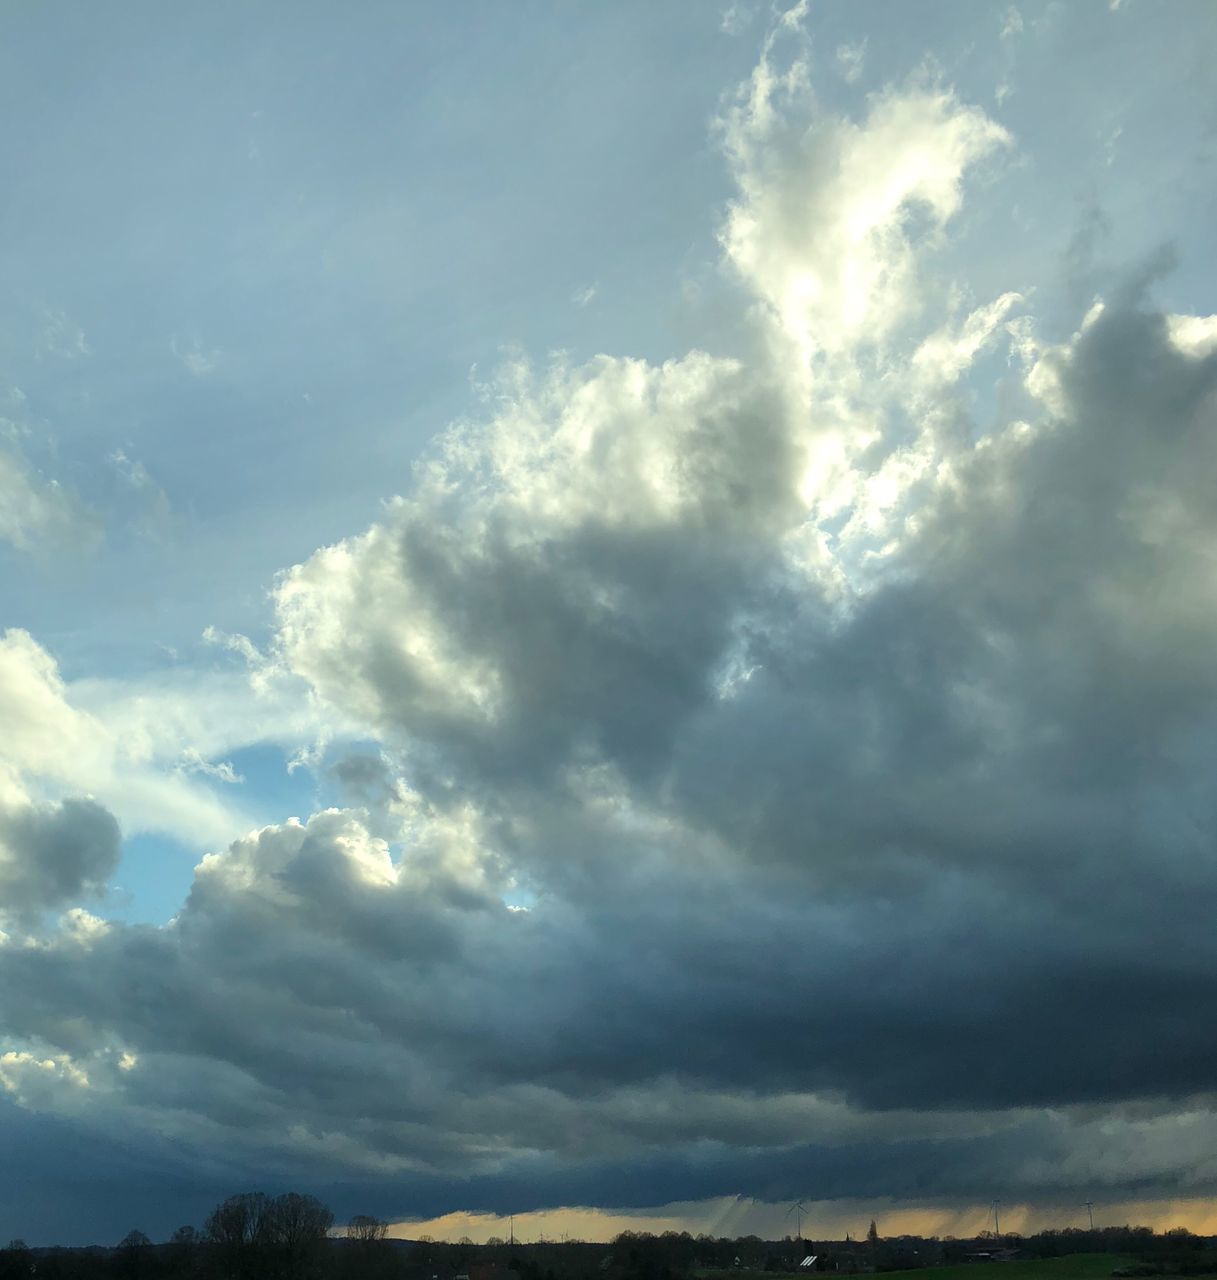 cloud - sky, sky, beauty in nature, scenics - nature, low angle view, tranquility, no people, nature, tranquil scene, day, outdoors, overcast, sunlight, storm, dramatic sky, idyllic, cloudscape, storm cloud, atmospheric mood, ominous, meteorology, streaming